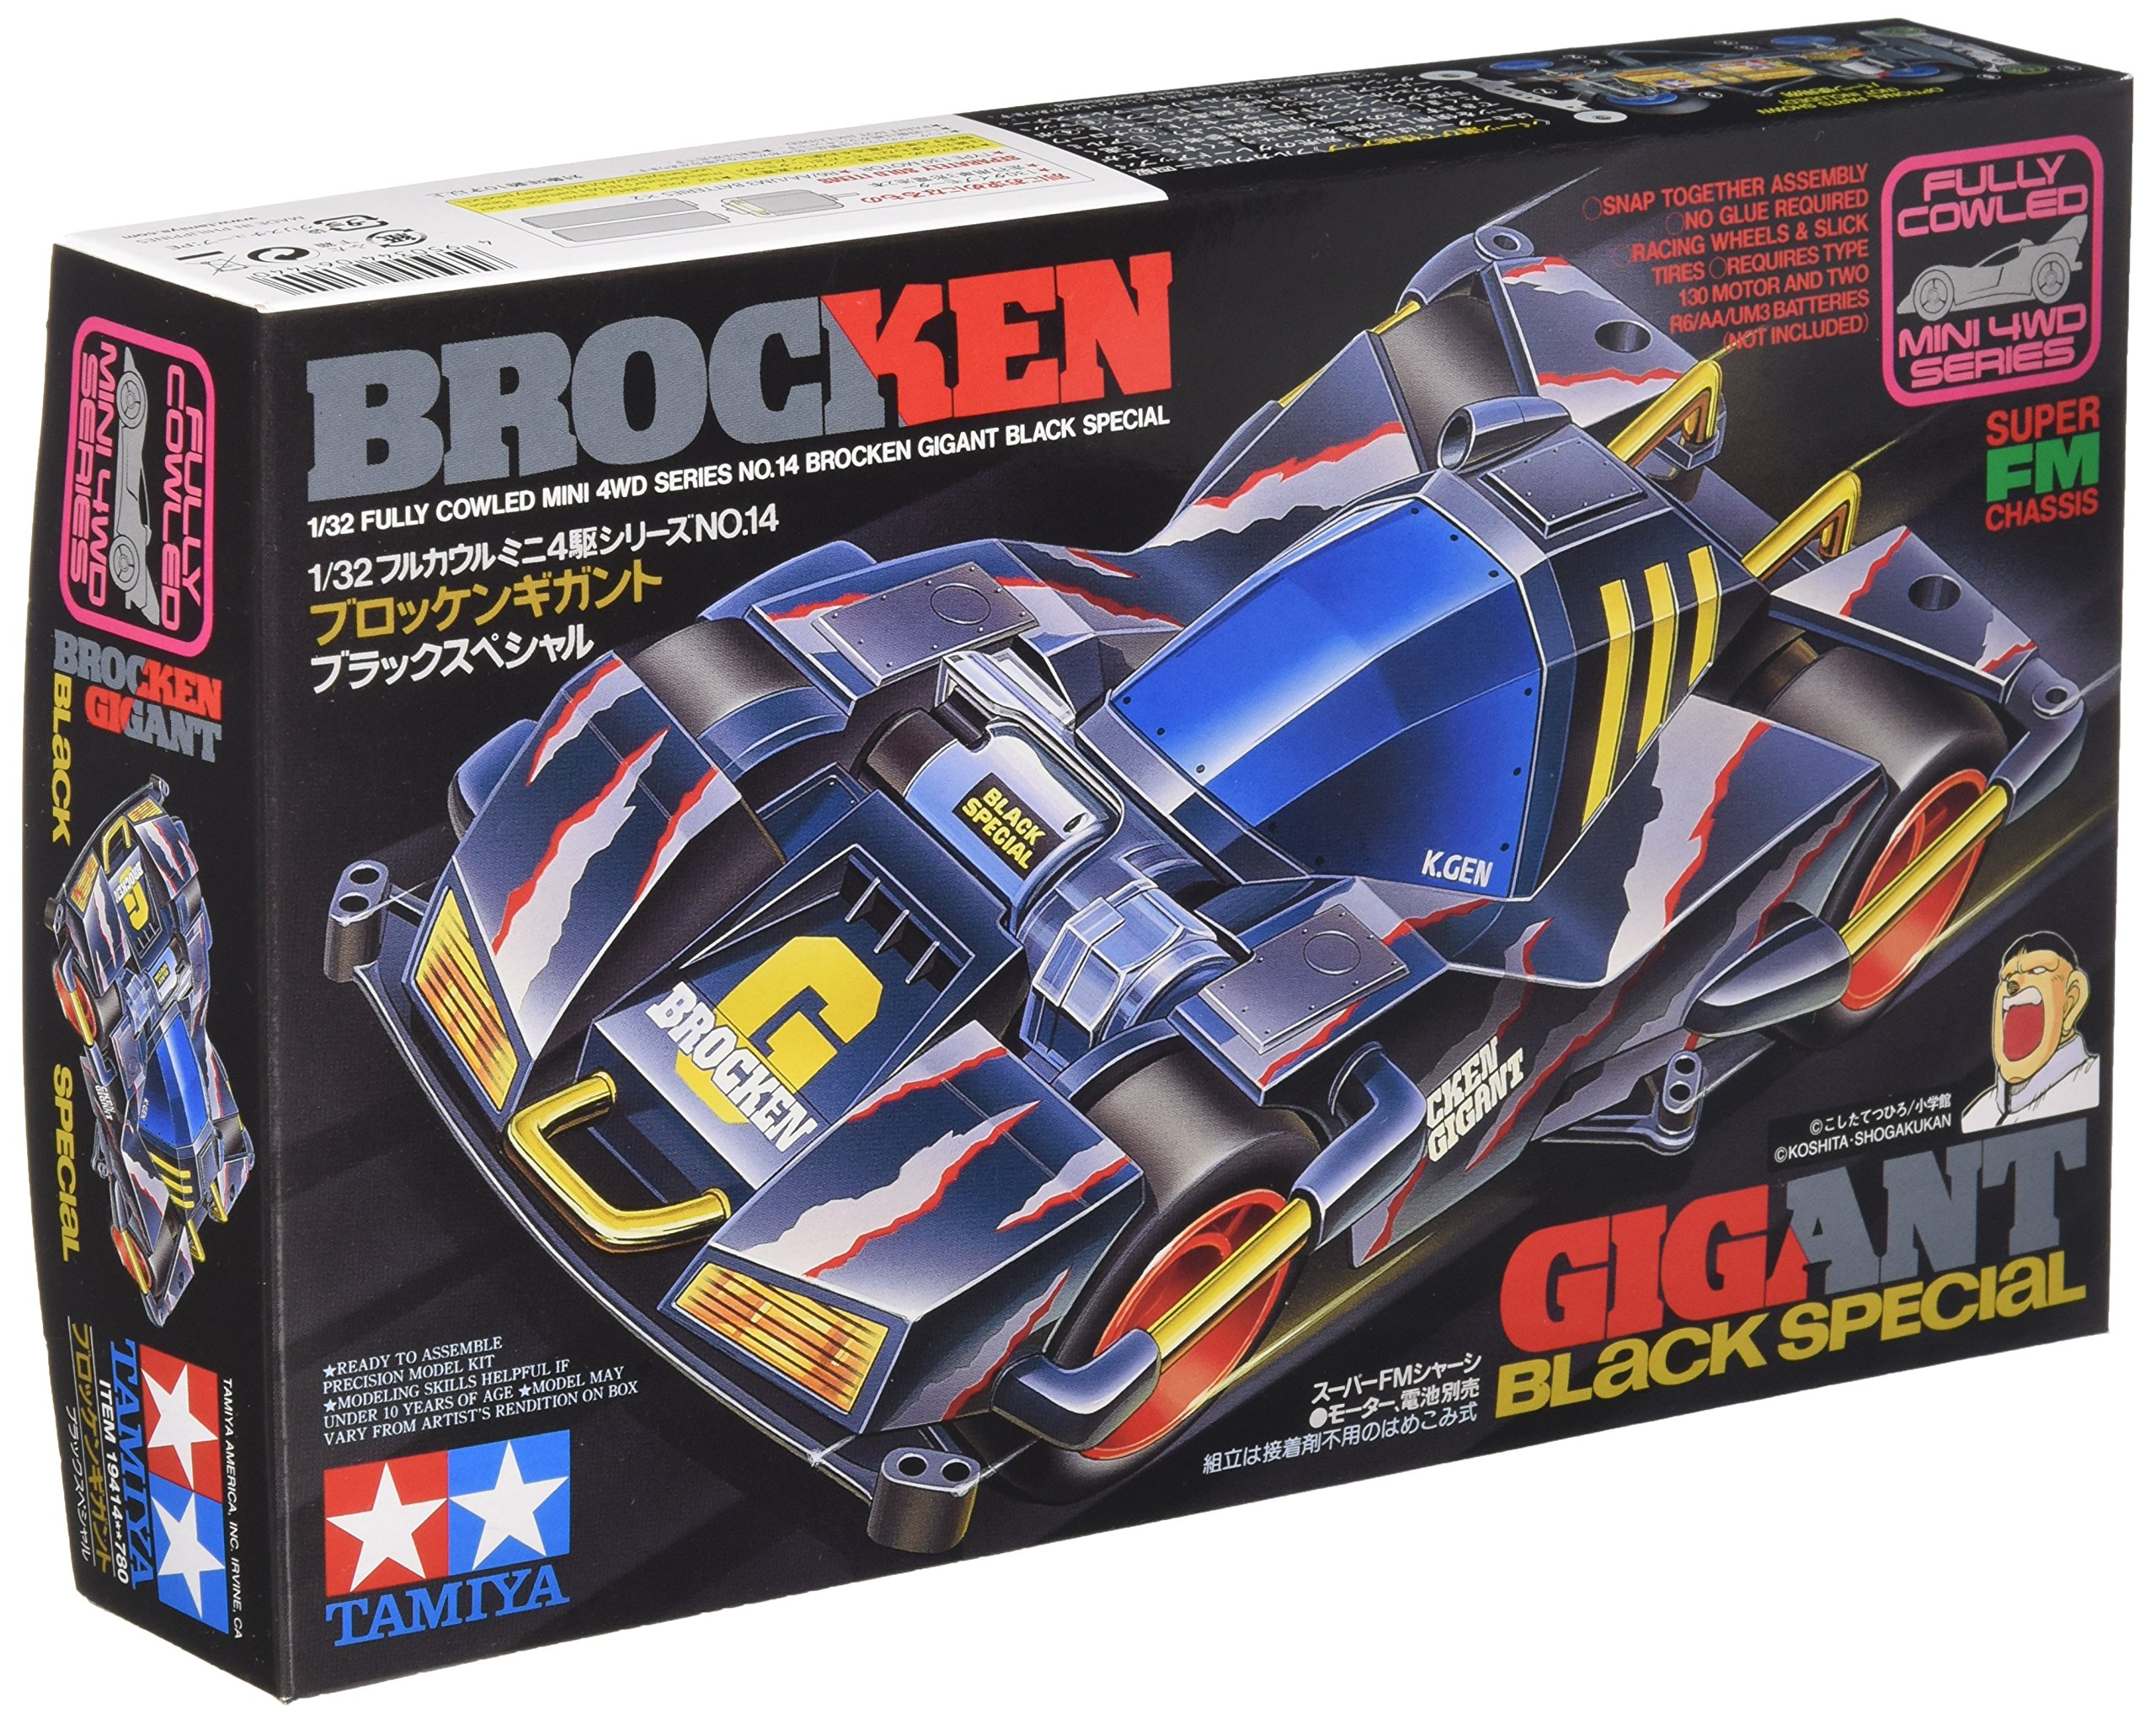 Tamiya full cowl Mini 4WD series No.14 Brocken Gigant Black Special (Super FM chassis) 19414